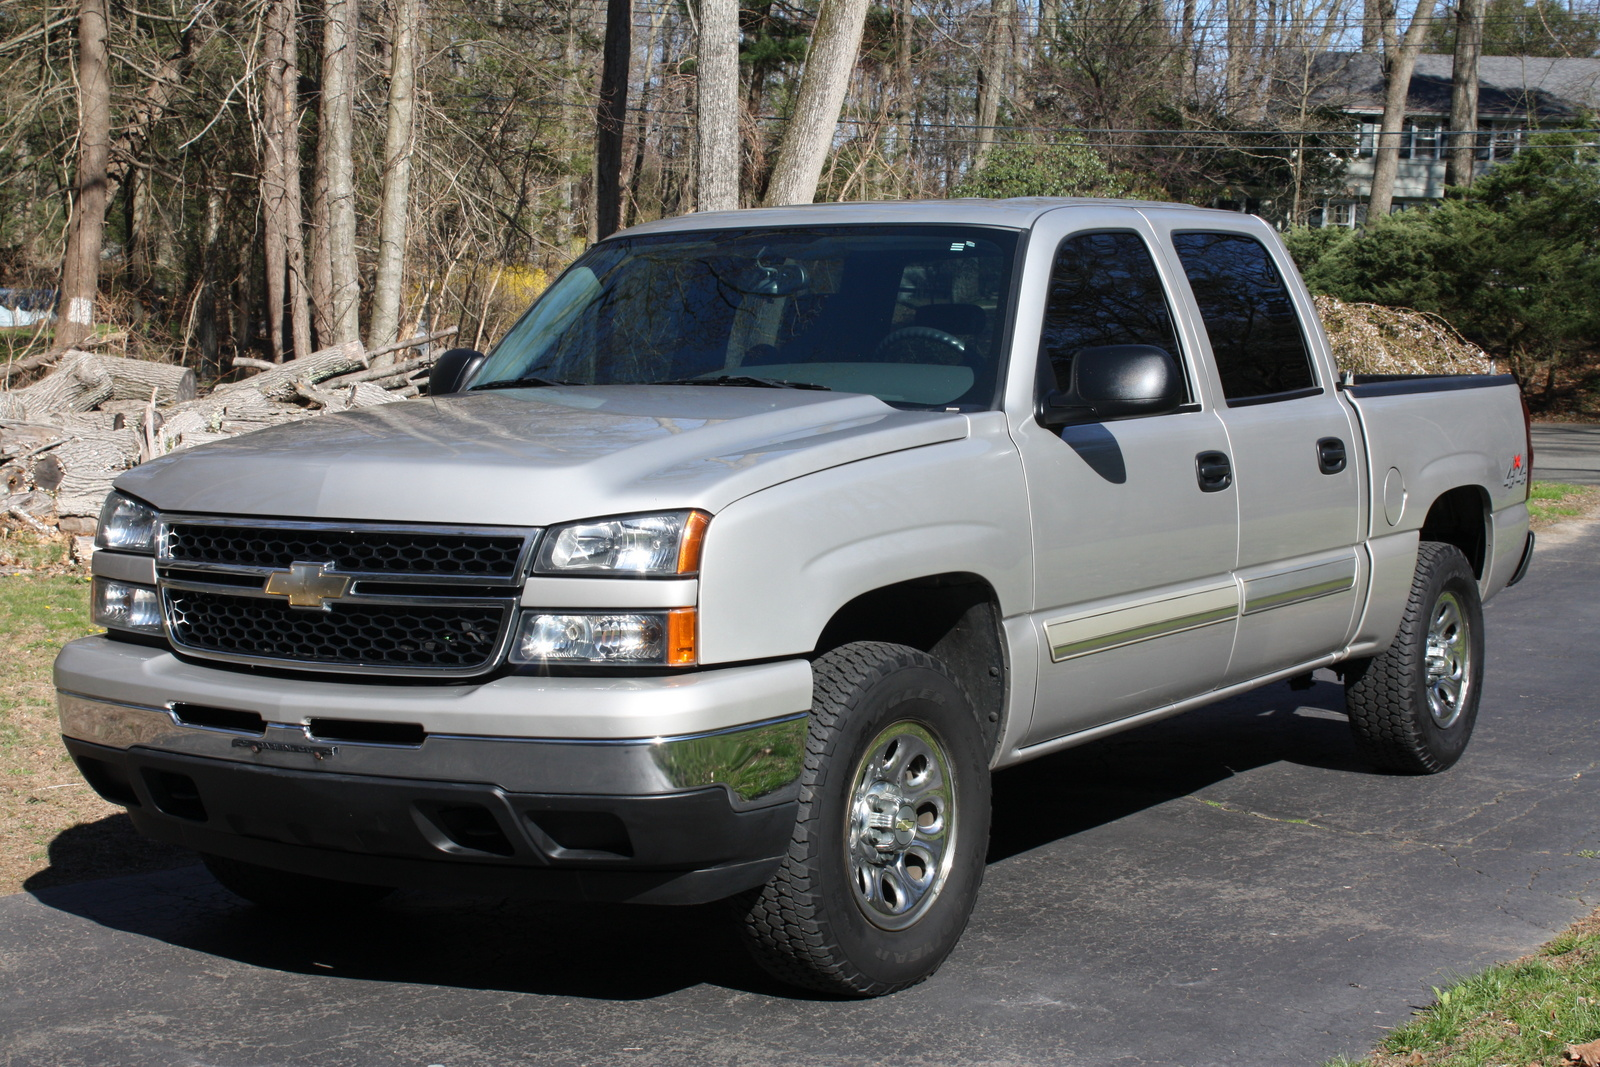 2006 chevrolet silverado 1500 exterior pictures cargurus. Black Bedroom Furniture Sets. Home Design Ideas